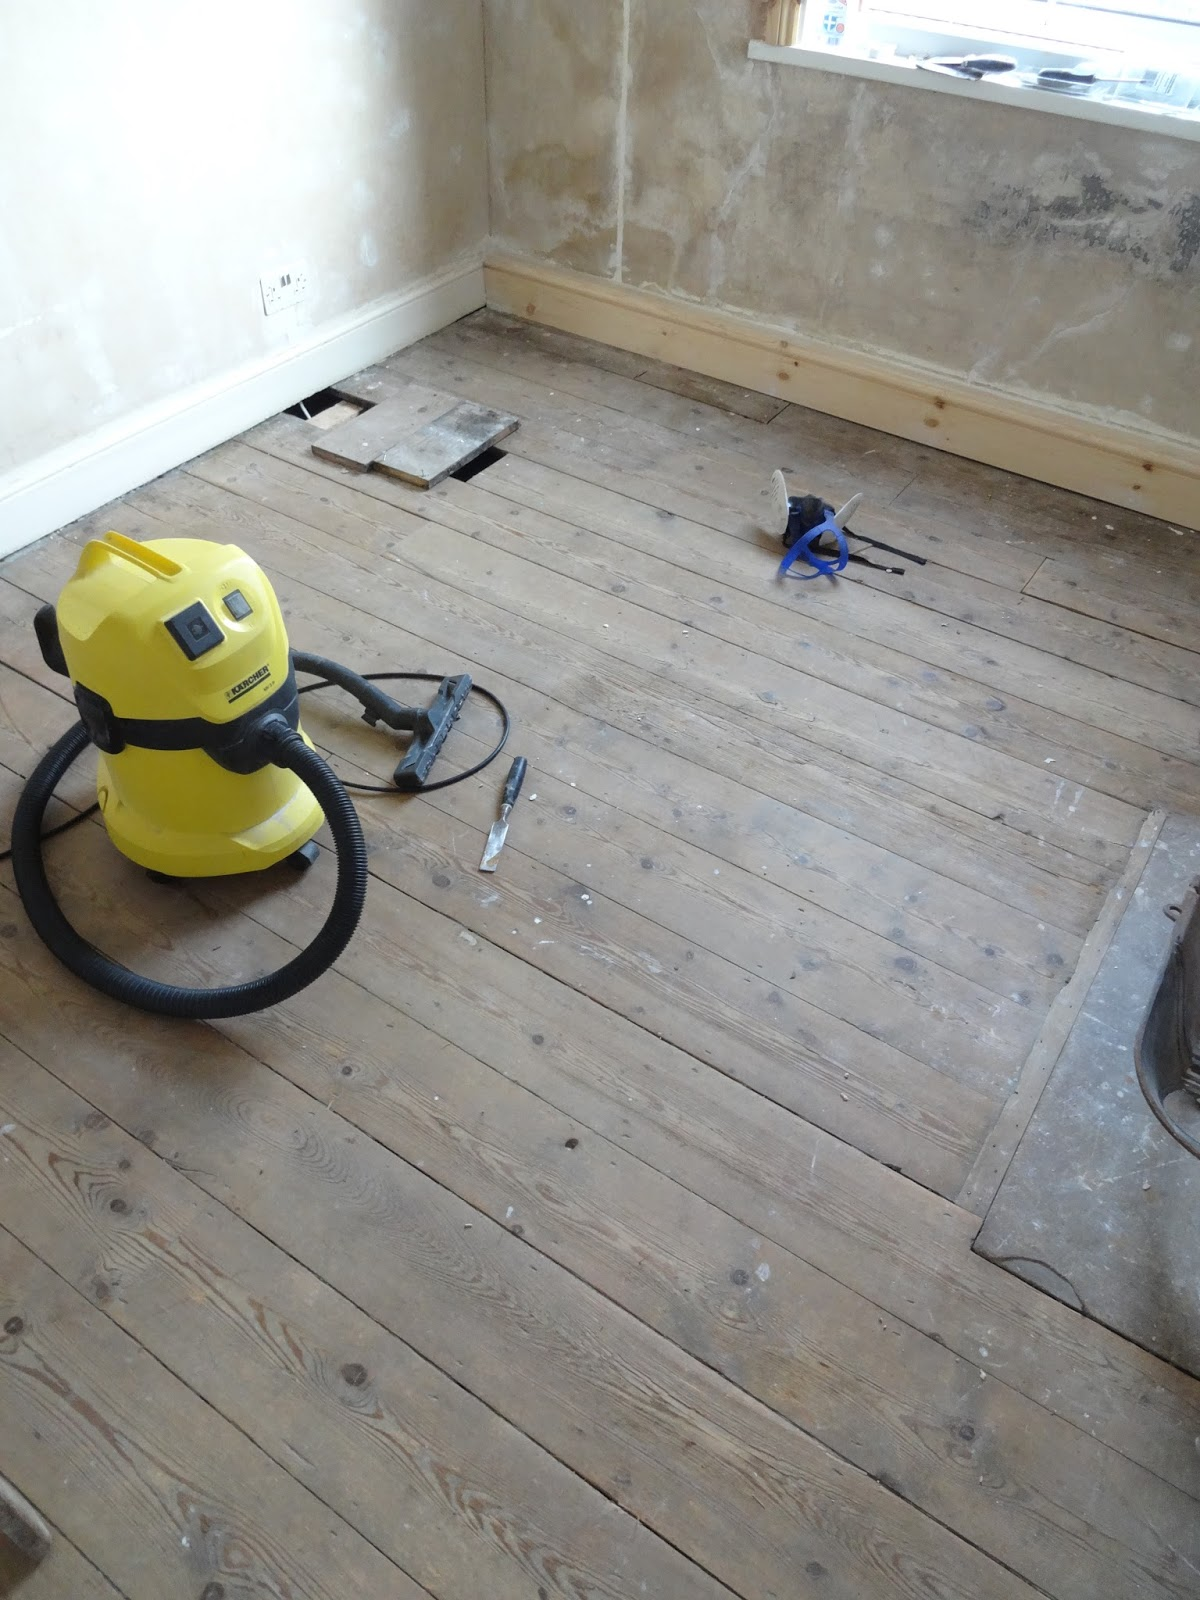 Uk Home Renovation Interiors And Diy Blog Doityourself Circuit Board Lamp 20 Do It Yourself How To Restore Floorboards Without Hiring A Professional Sander